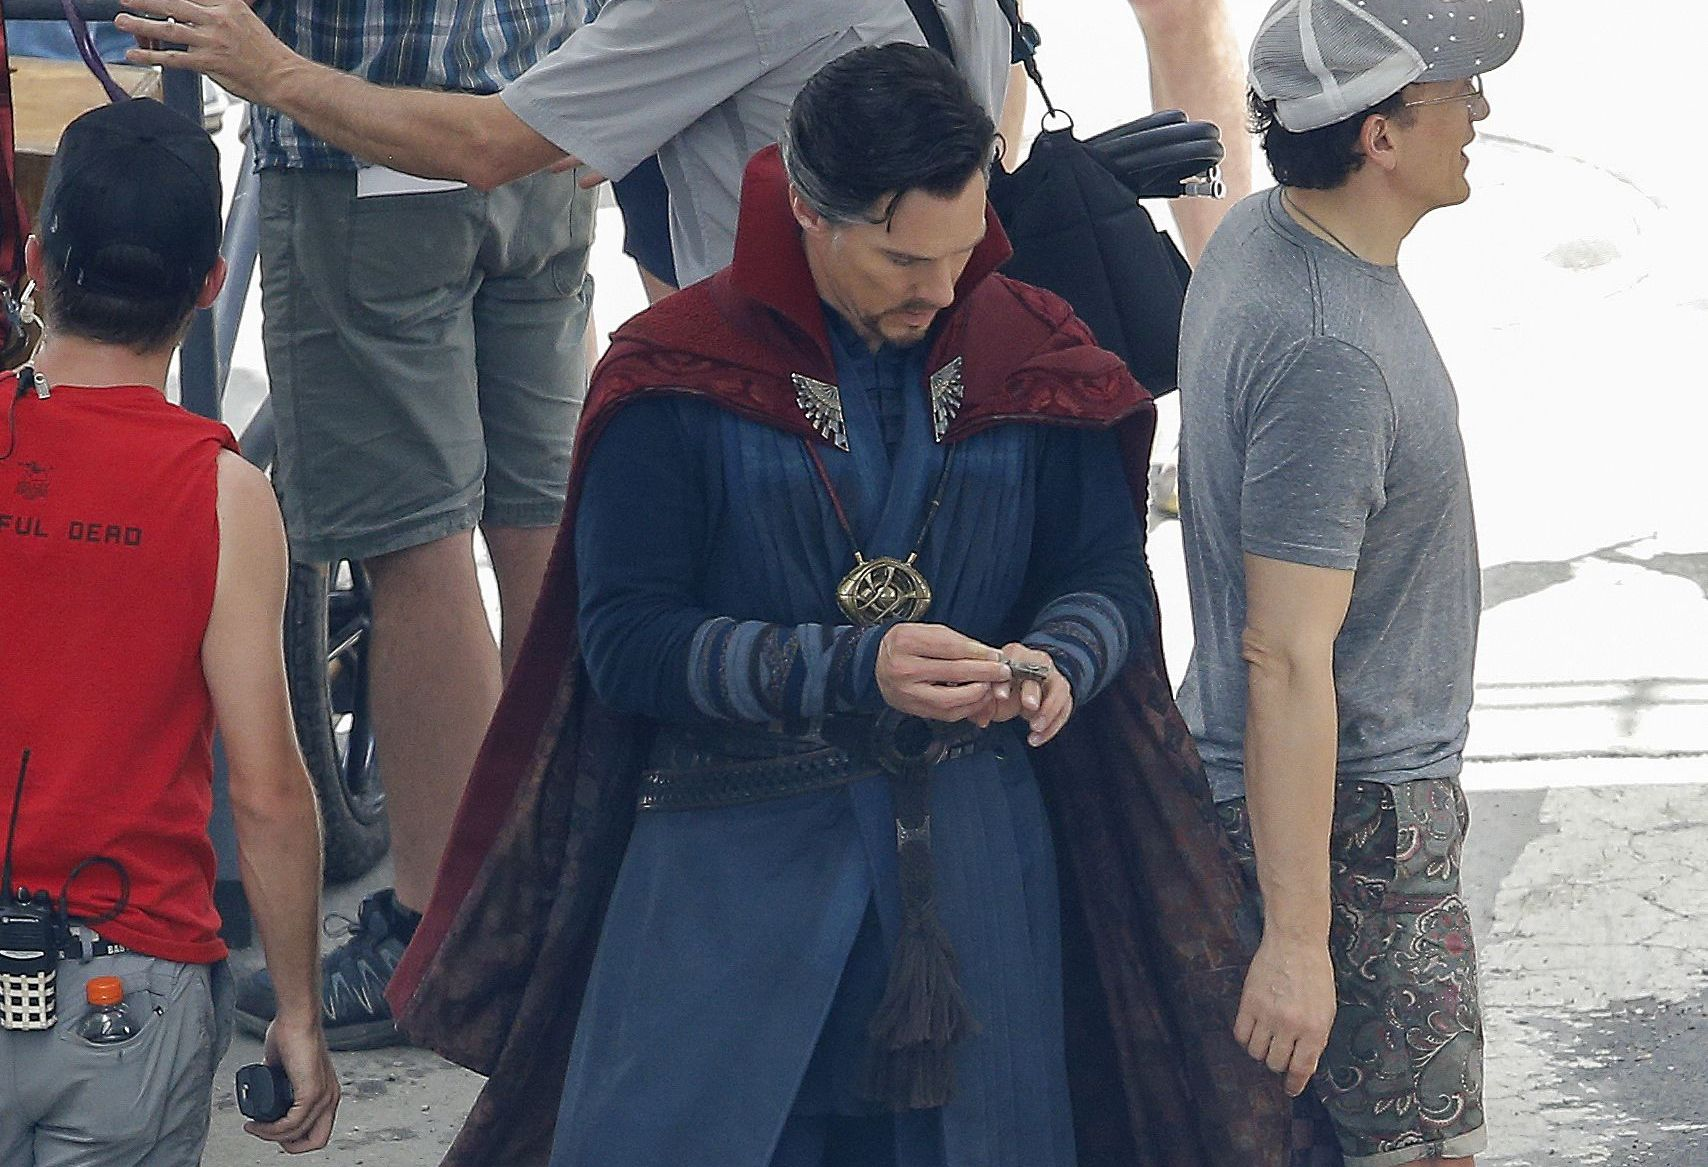 """Cast member Benedict Cumberbatch, in red cape, walks to the set during the filming of """"Avengers: Infinity War, in Atlanta. The set is modeled after a New York City streetAvengers Infinity War, Atlanta, USA - 28 Jun 2017"""